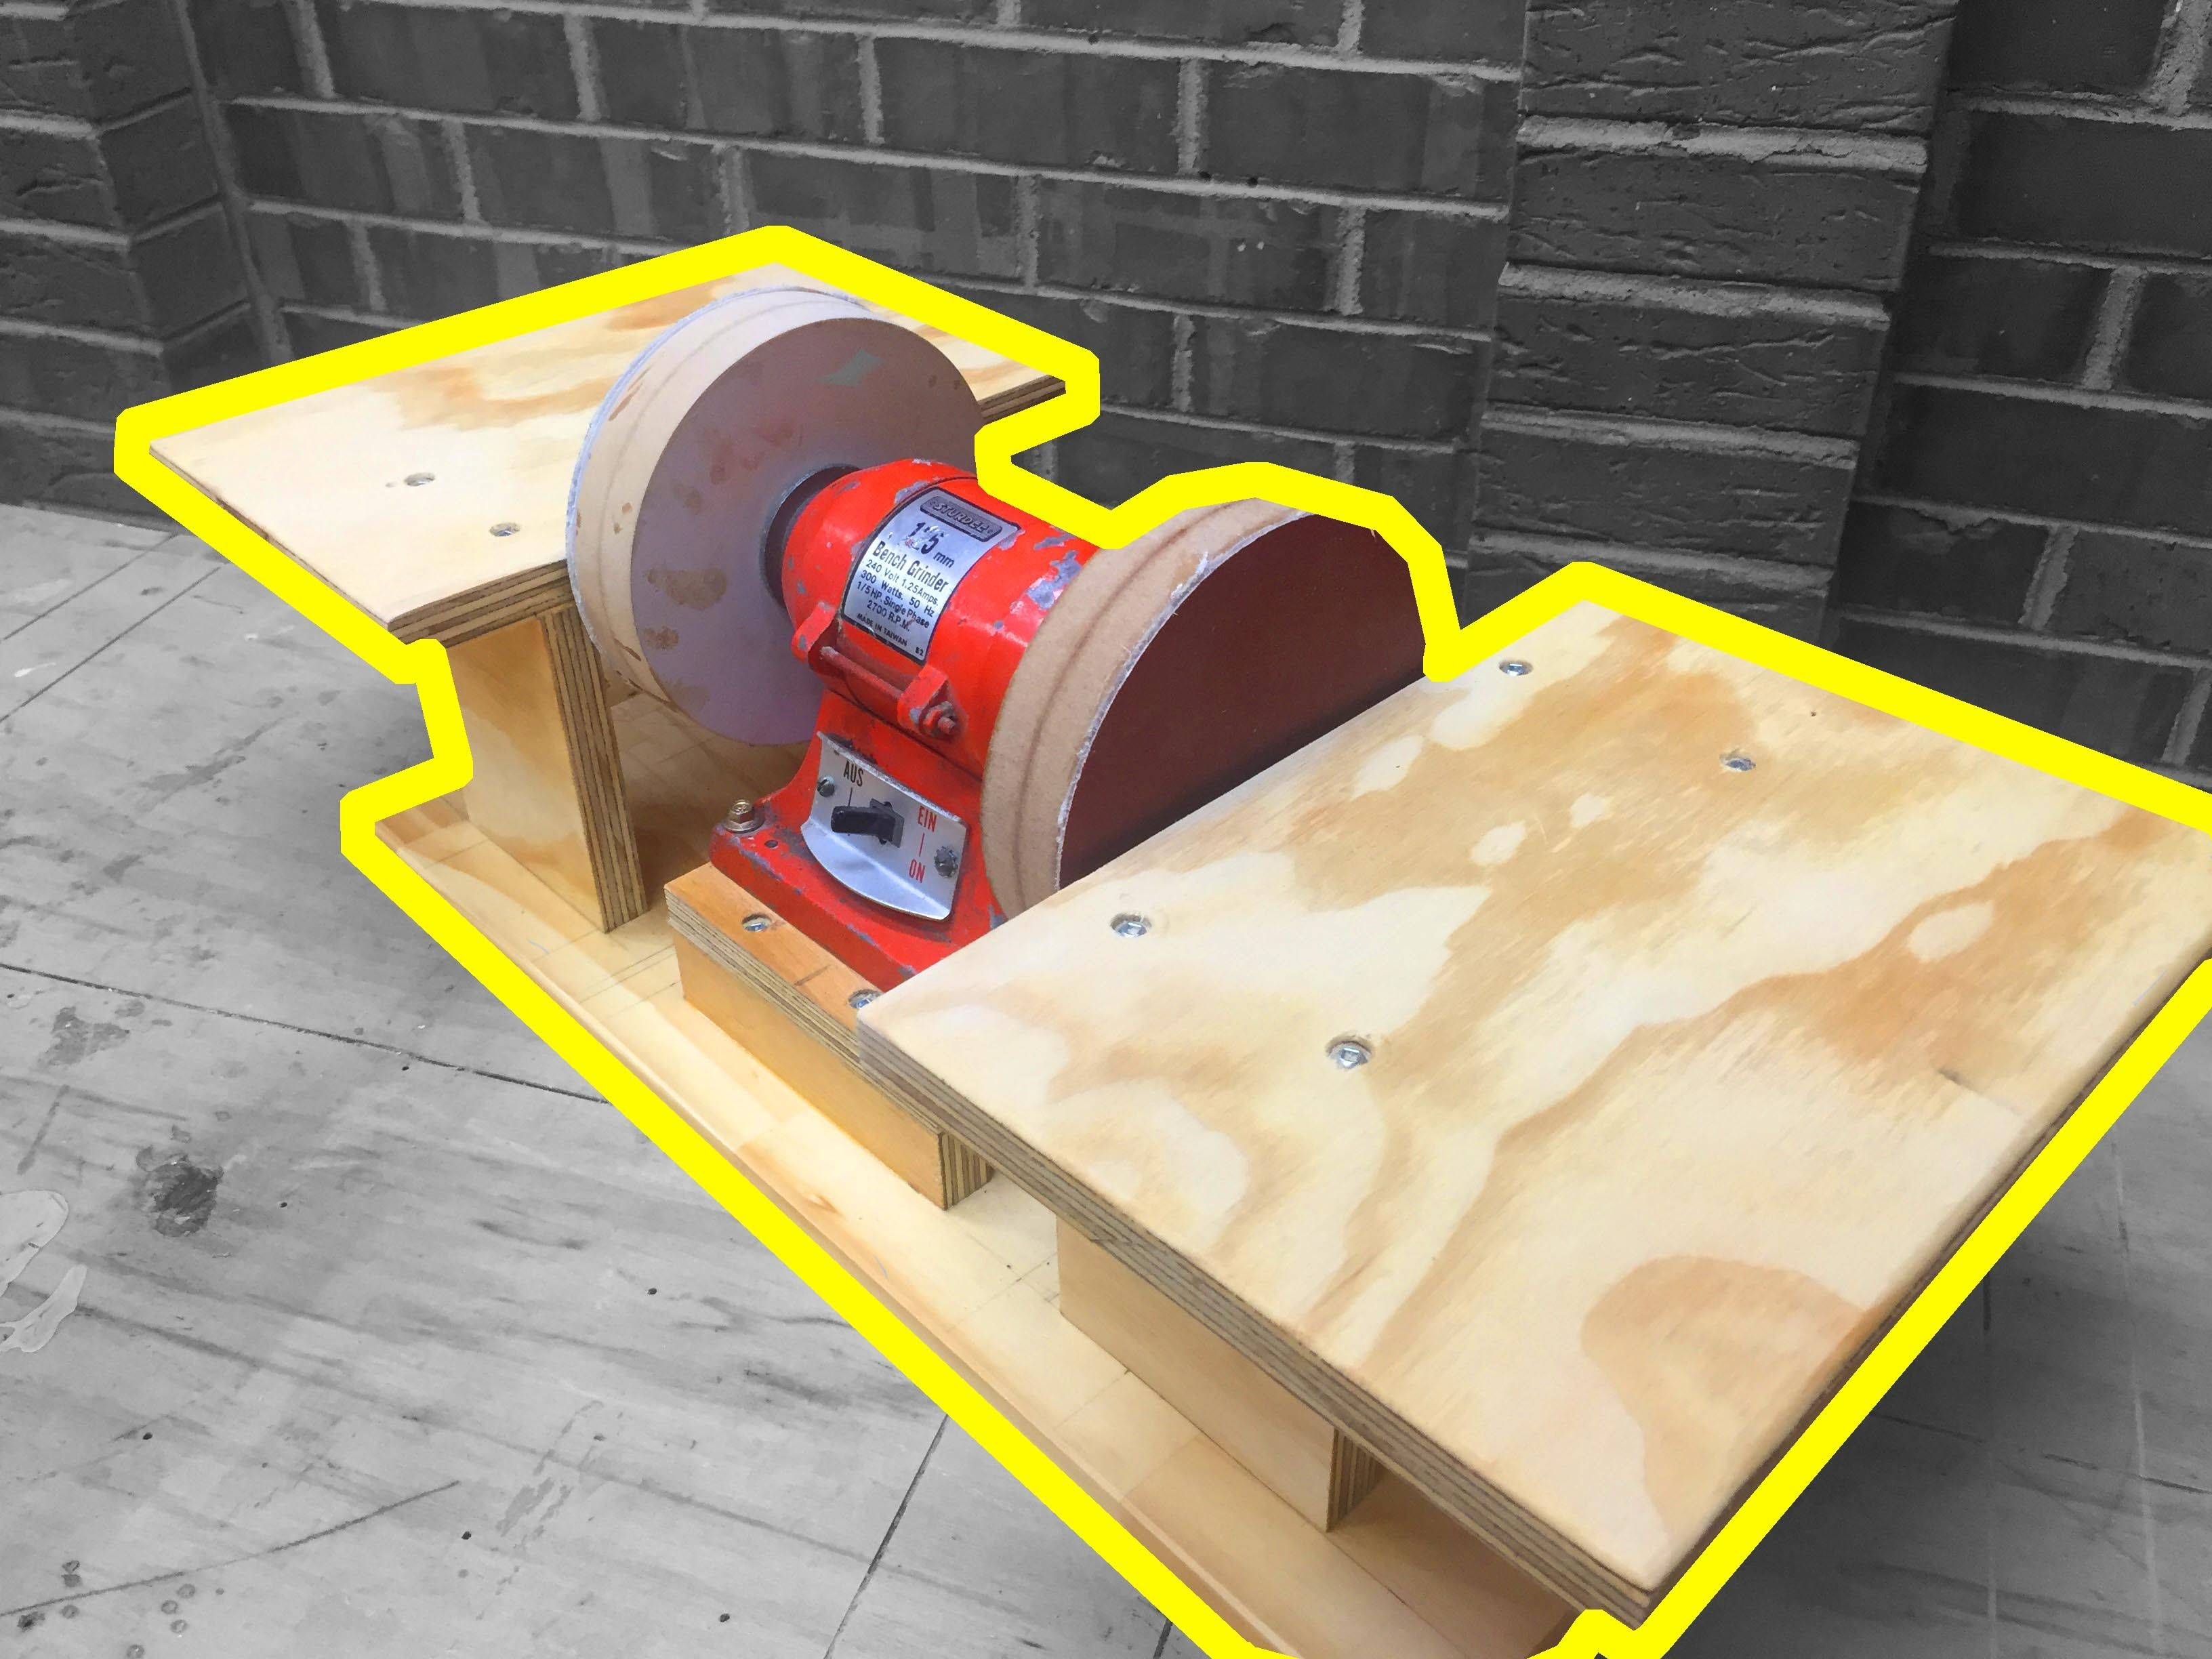 Home Made Double Disc Sander For Under 5 Wood Crafting Tools Used Woodworking Tools Woodworking Projects